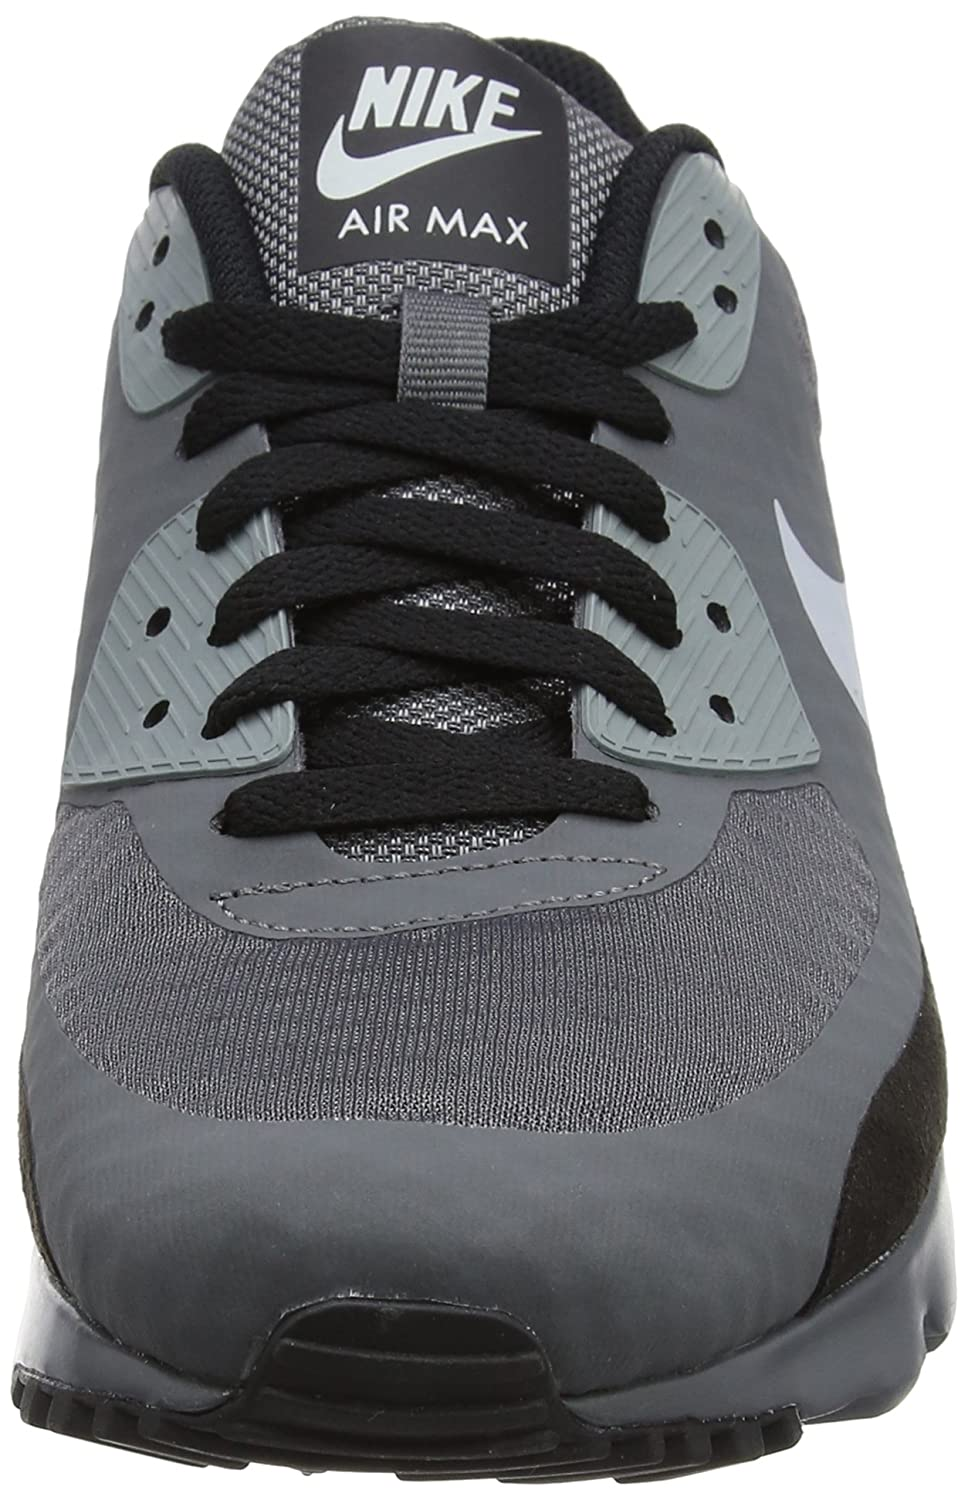 buy popular 3d1bc 79dd8 Nike 819474-011, Men s Sport Shoes, Multi-colored (Dark Grey Wolf Grey Cool  Grey Black), 6 UK (39 EU)  Amazon.co.uk  Shoes   Bags